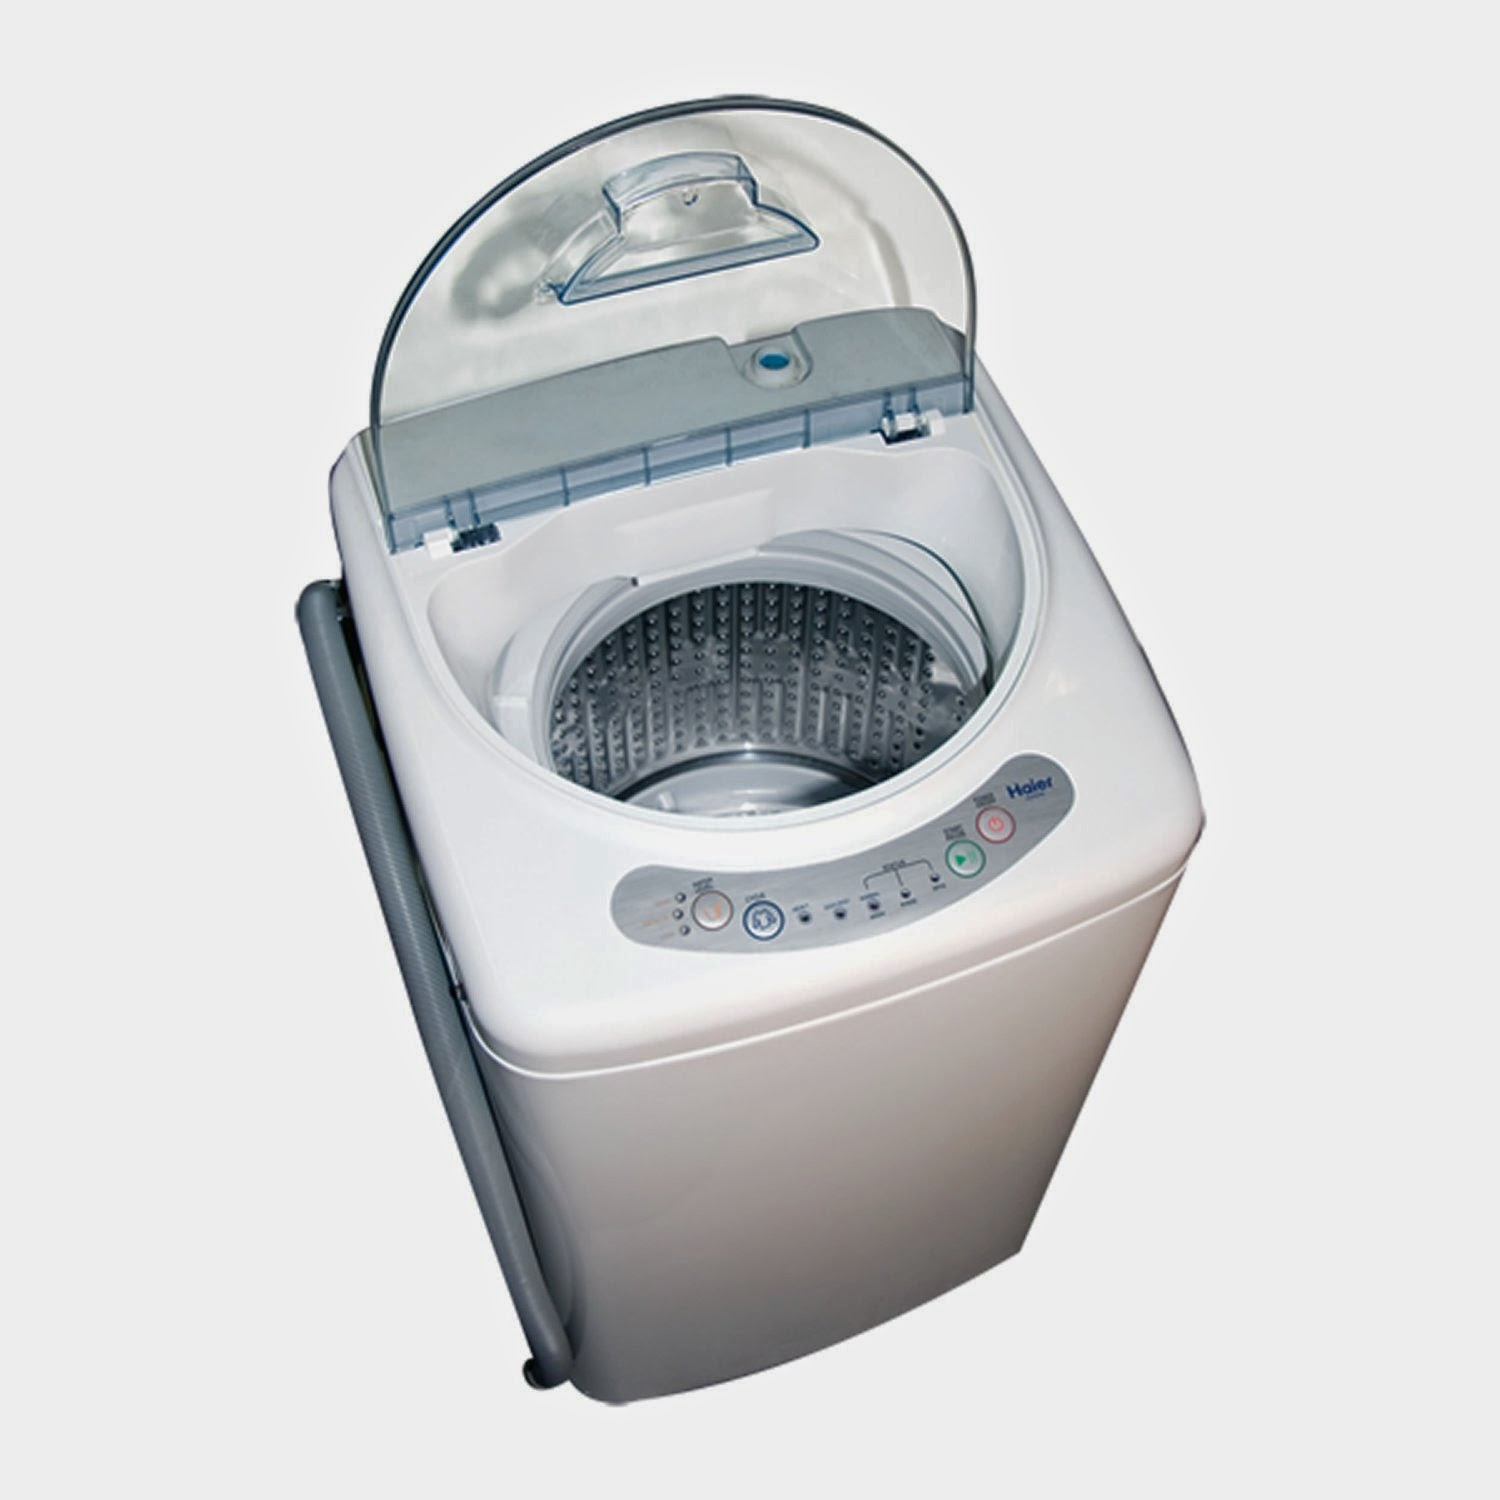 Wonderful Portable Washer Dryer Combo: Portable Washer And Dryer Combo For Apartments